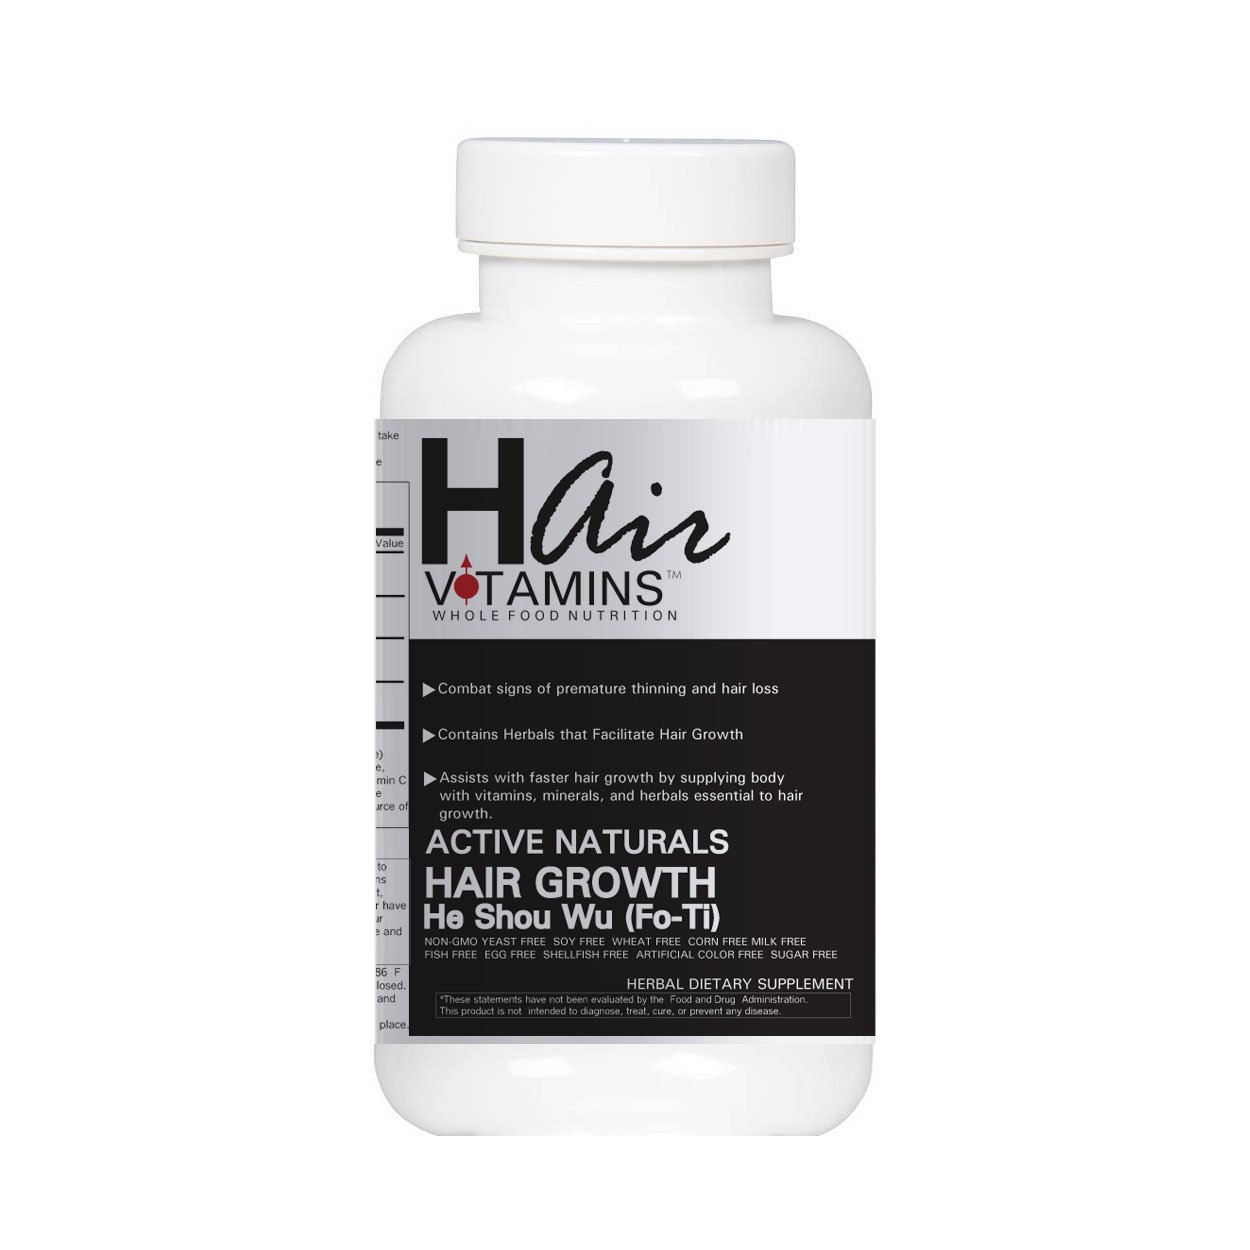 He Shou Wu (Fo-Ti) Super Speed Hair Growth Support Capsules